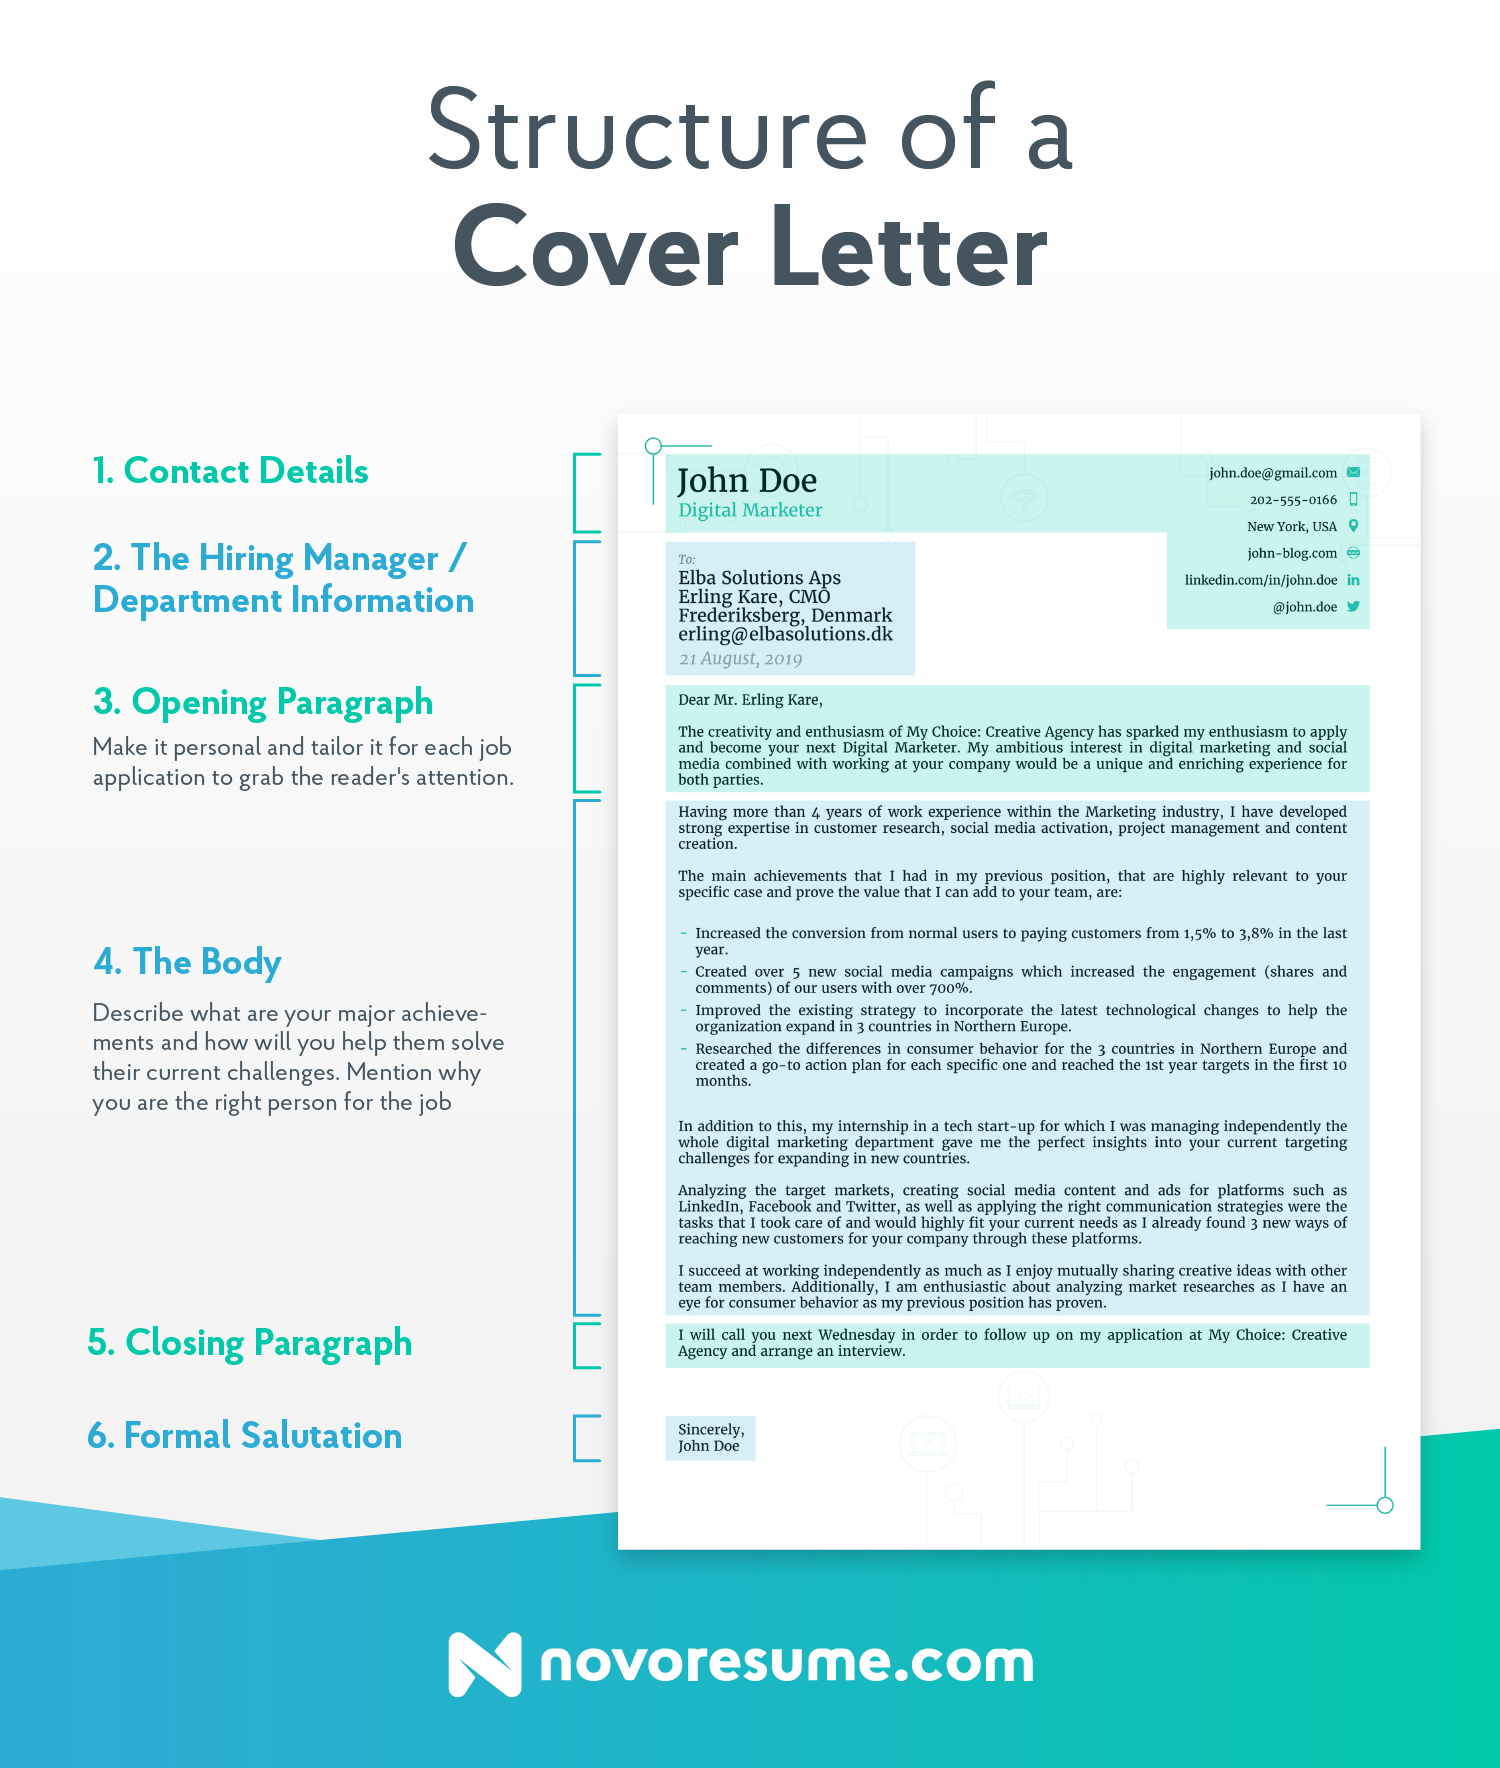 How to Write a Cover Letter & Get the Job [5+ Real-Life Examples]